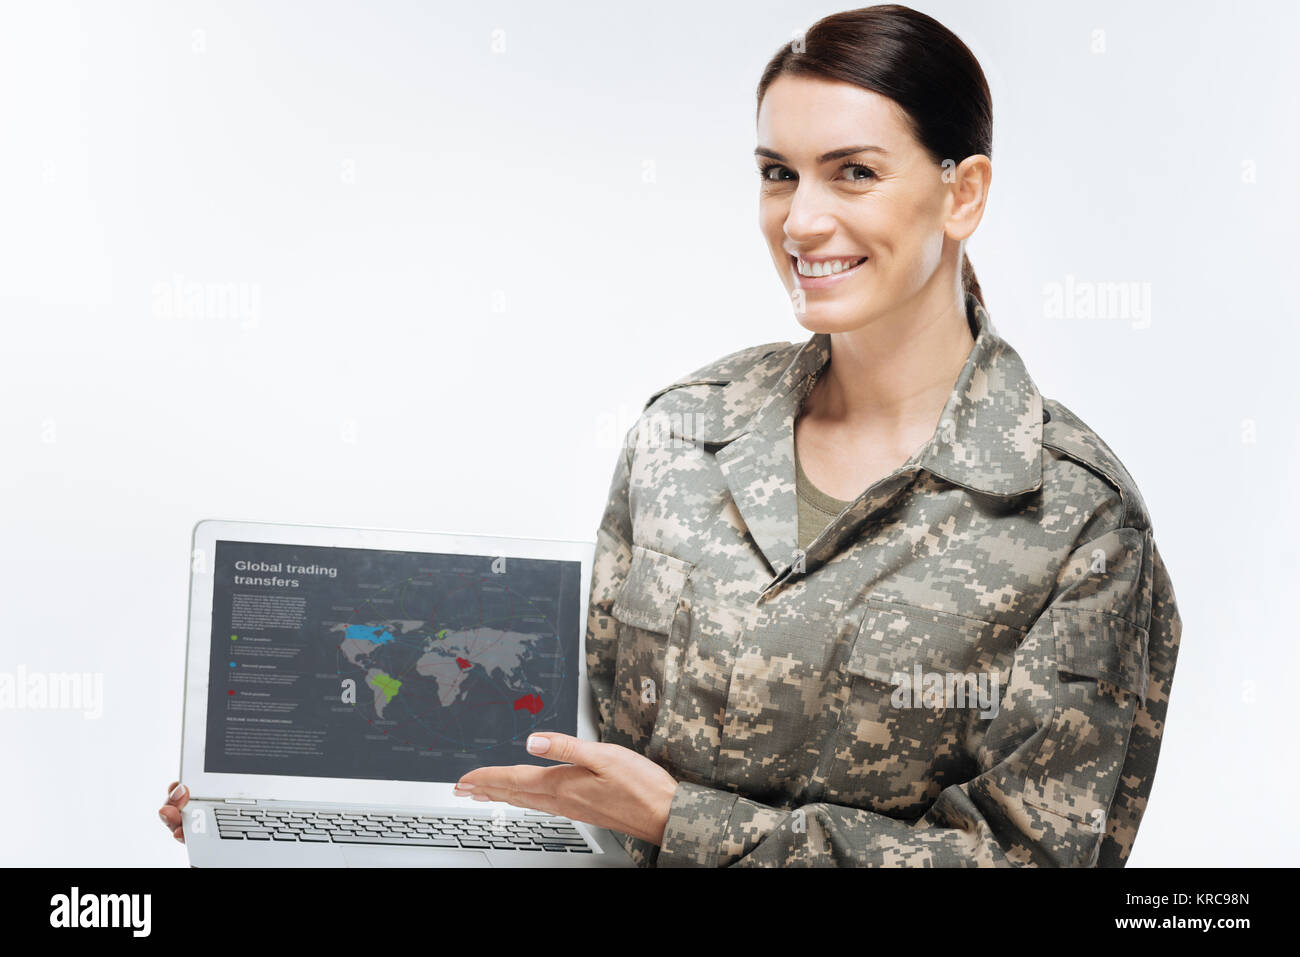 Vigorous female soldier mapping region - Stock Image